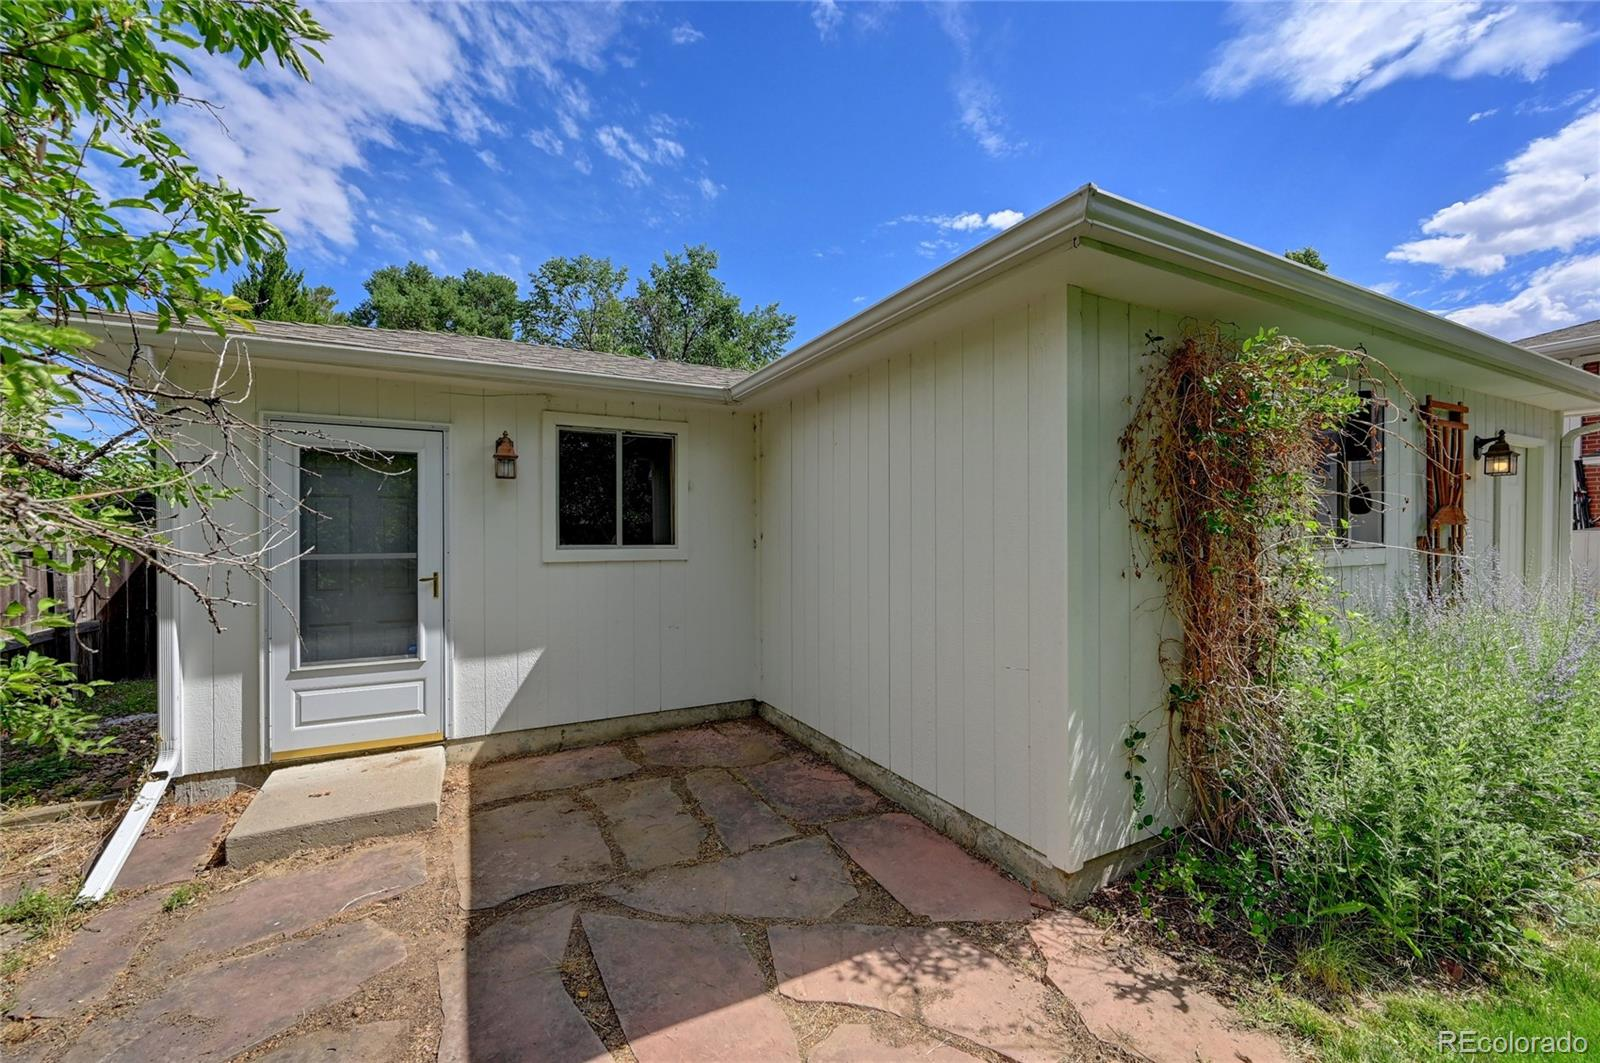 MLS# 3941495 - 6 - 231 Hudson Street, Denver, CO 80220